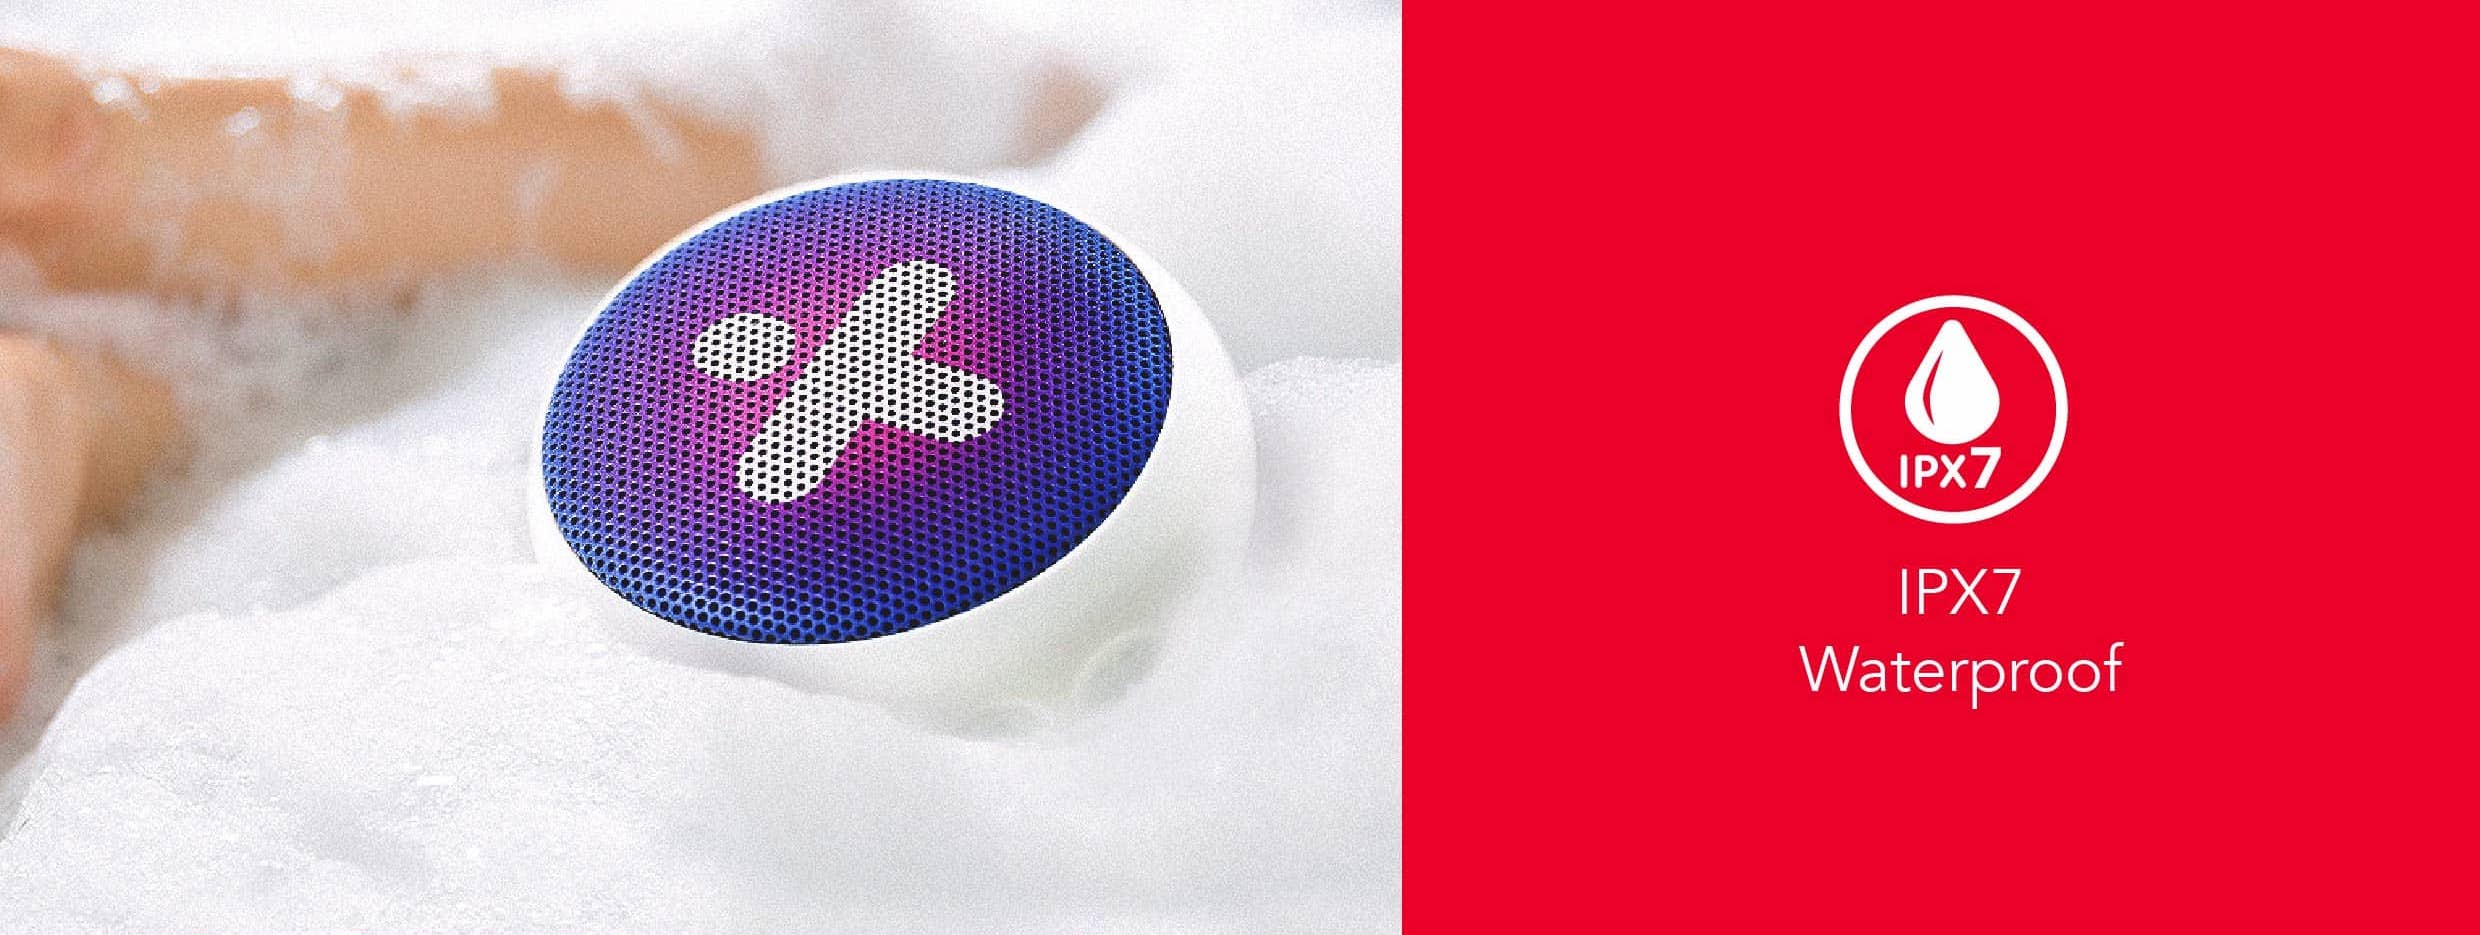 X-mini-Kai-X1-W-Waterproof-True-Wireless-Bluetooth-Portable-Speaker-IPX7-Waterproof